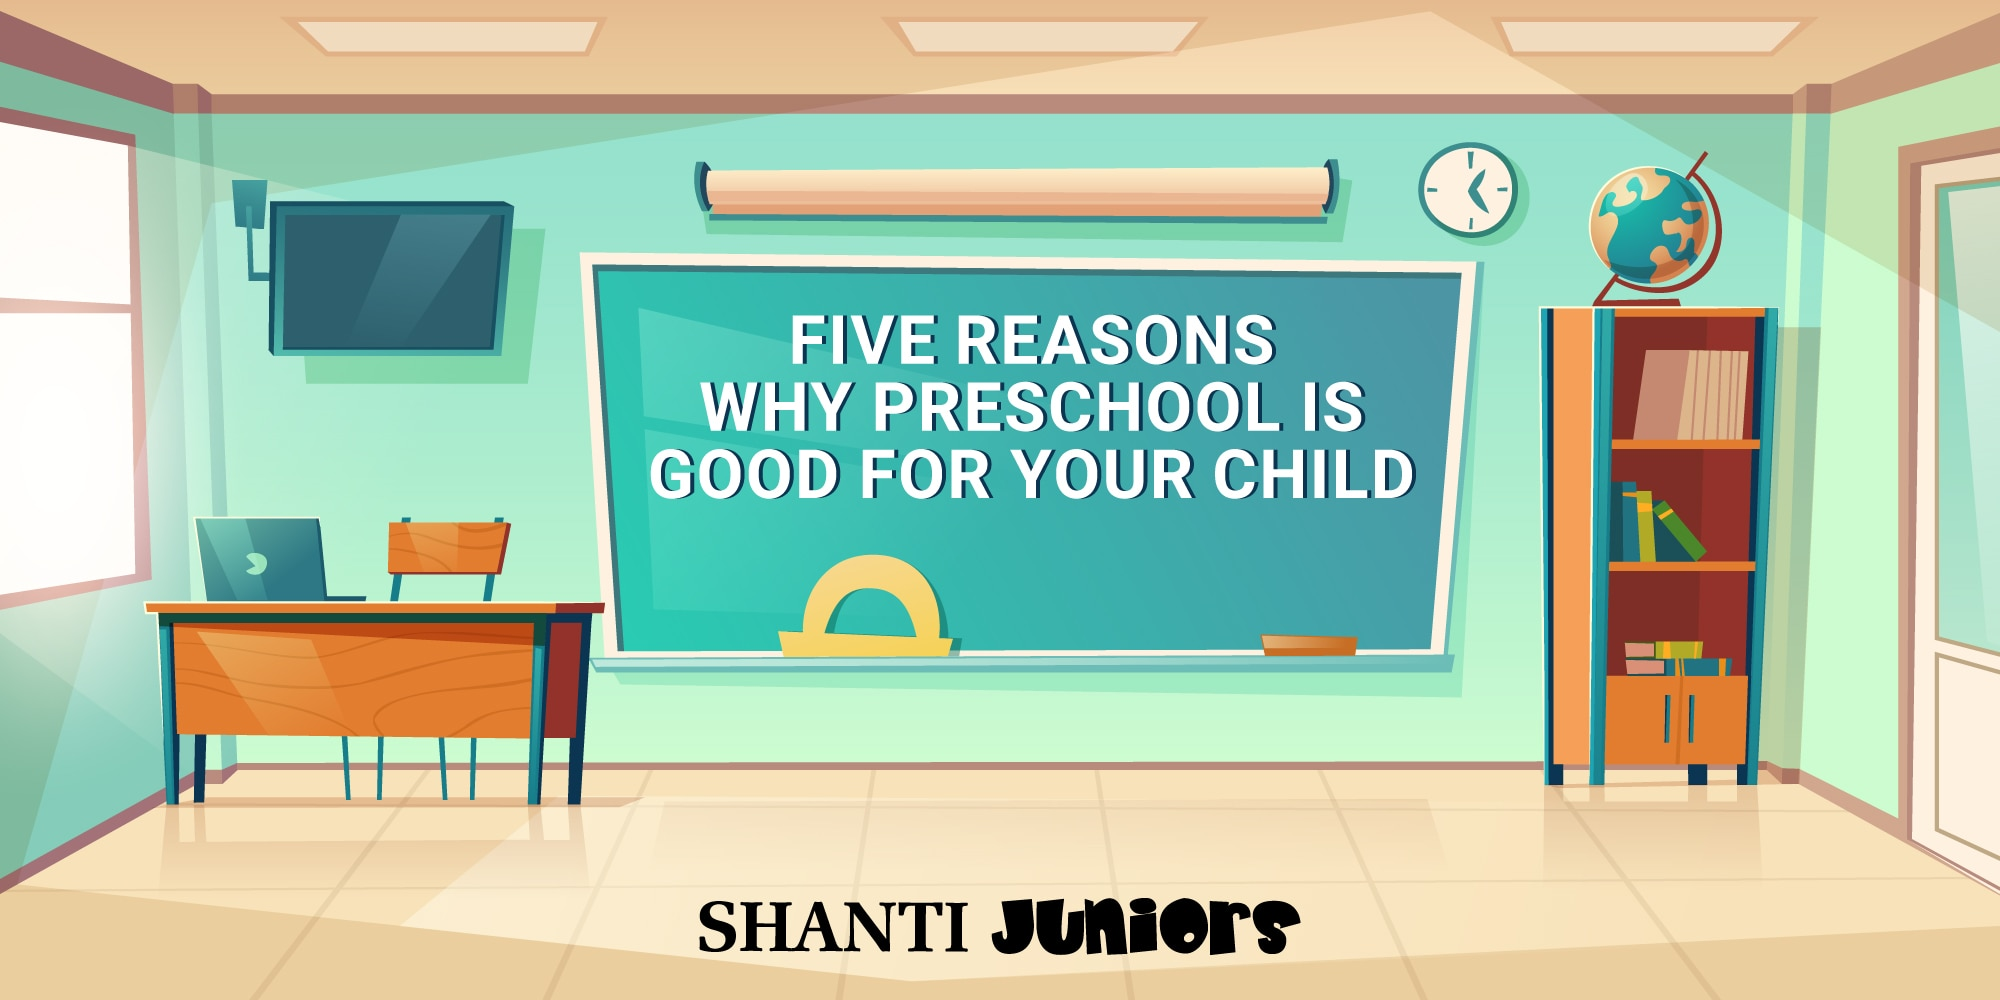 Five Reasons Why Preschool is Good for Your Child